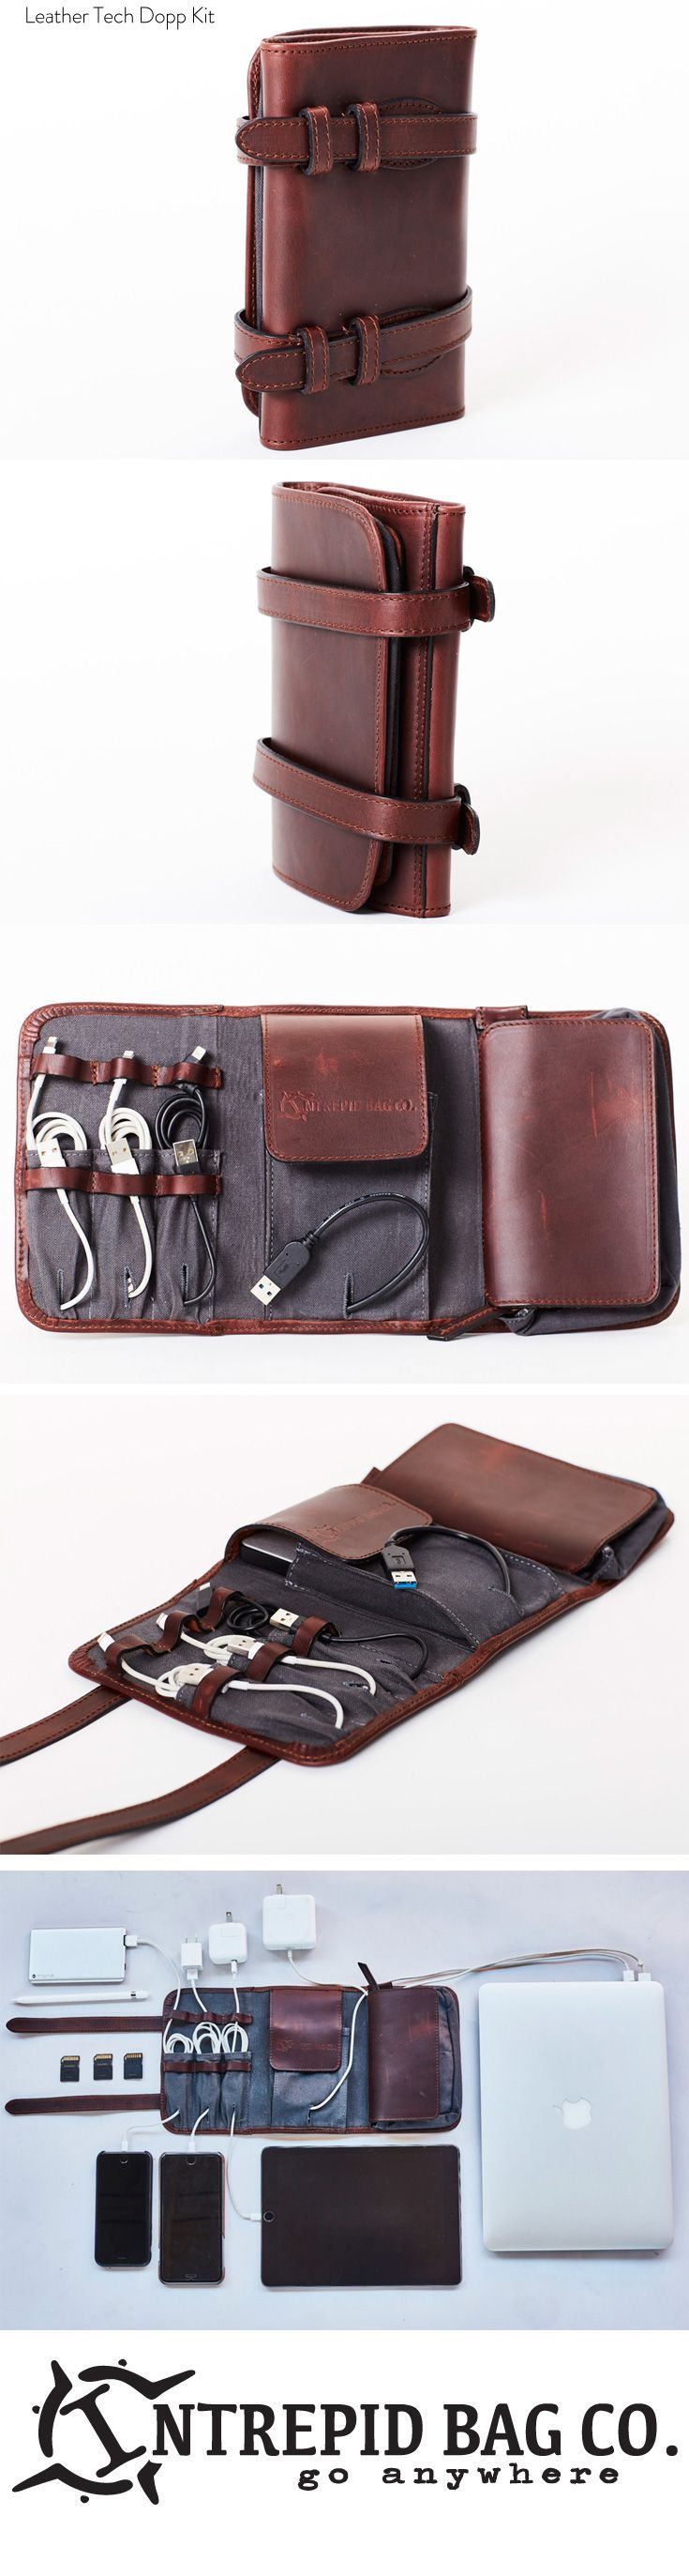 https://www.intrepidbags.com/products/intrepid-tech-roll Intrepid Leather Tech Dopp Kit. A rfull grain leather rolling dopp kit for all your cords, accessories, and small tech. Keeps all your essentials close and organized in one slick package. Available at Intrepid Bag Co!